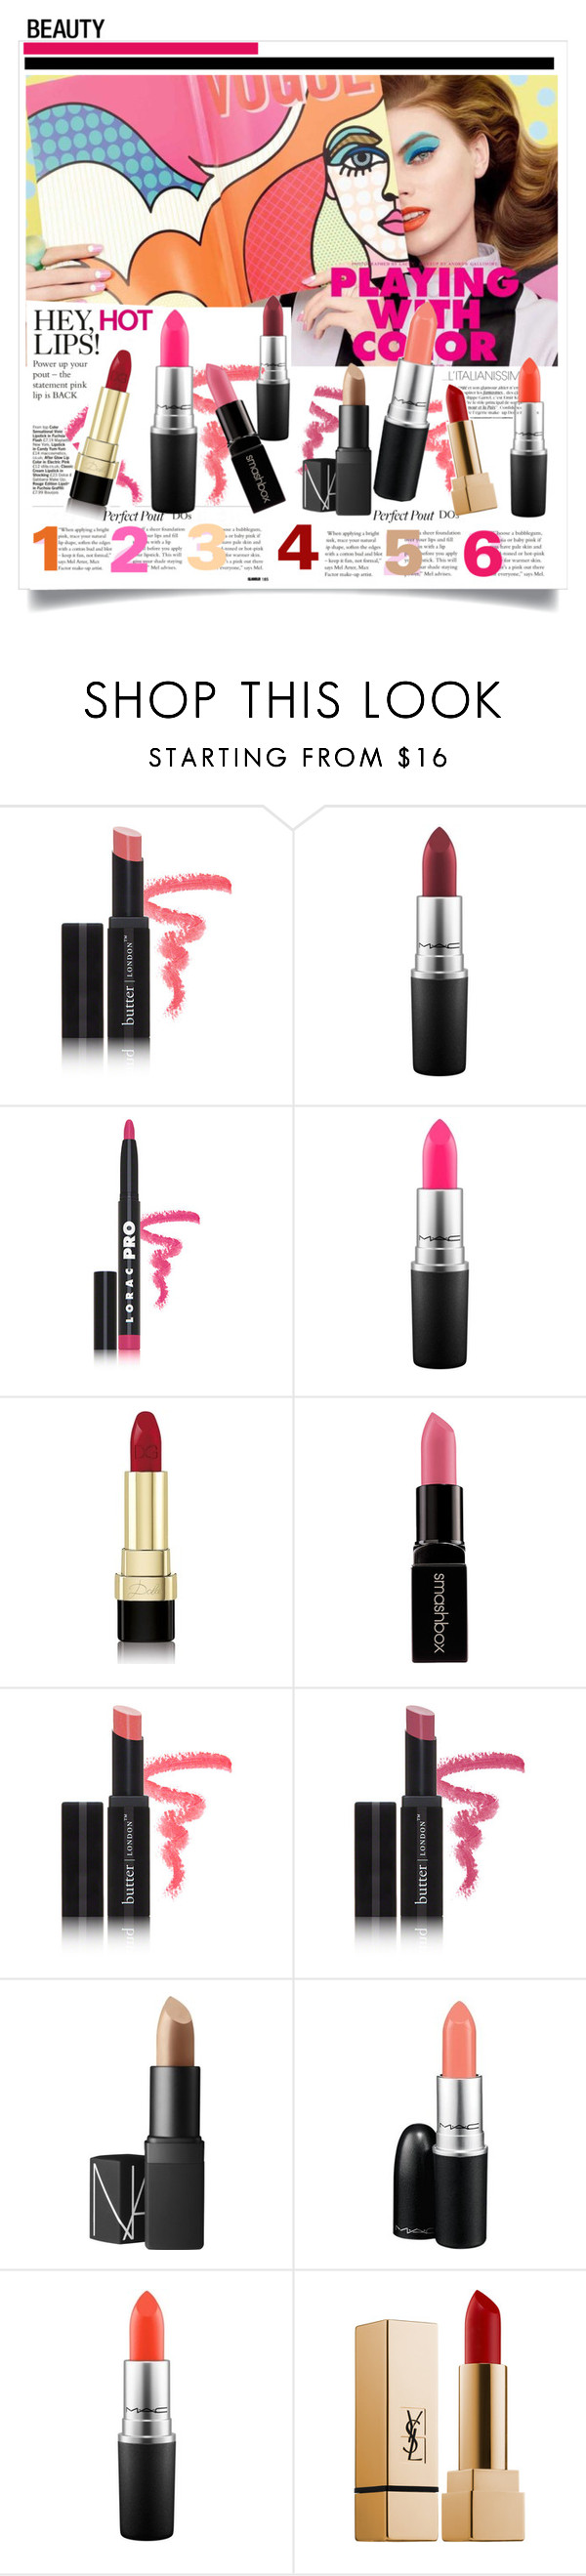 """""""Perfect Pout: Matte Lipstick - choose yours"""" by sofirose ❤ liked on Polyvore featuring beauty, Butter London, MAC Cosmetics, Dolce&Gabbana, Smashbox, NARS Cosmetics and Yves Saint Laurent"""